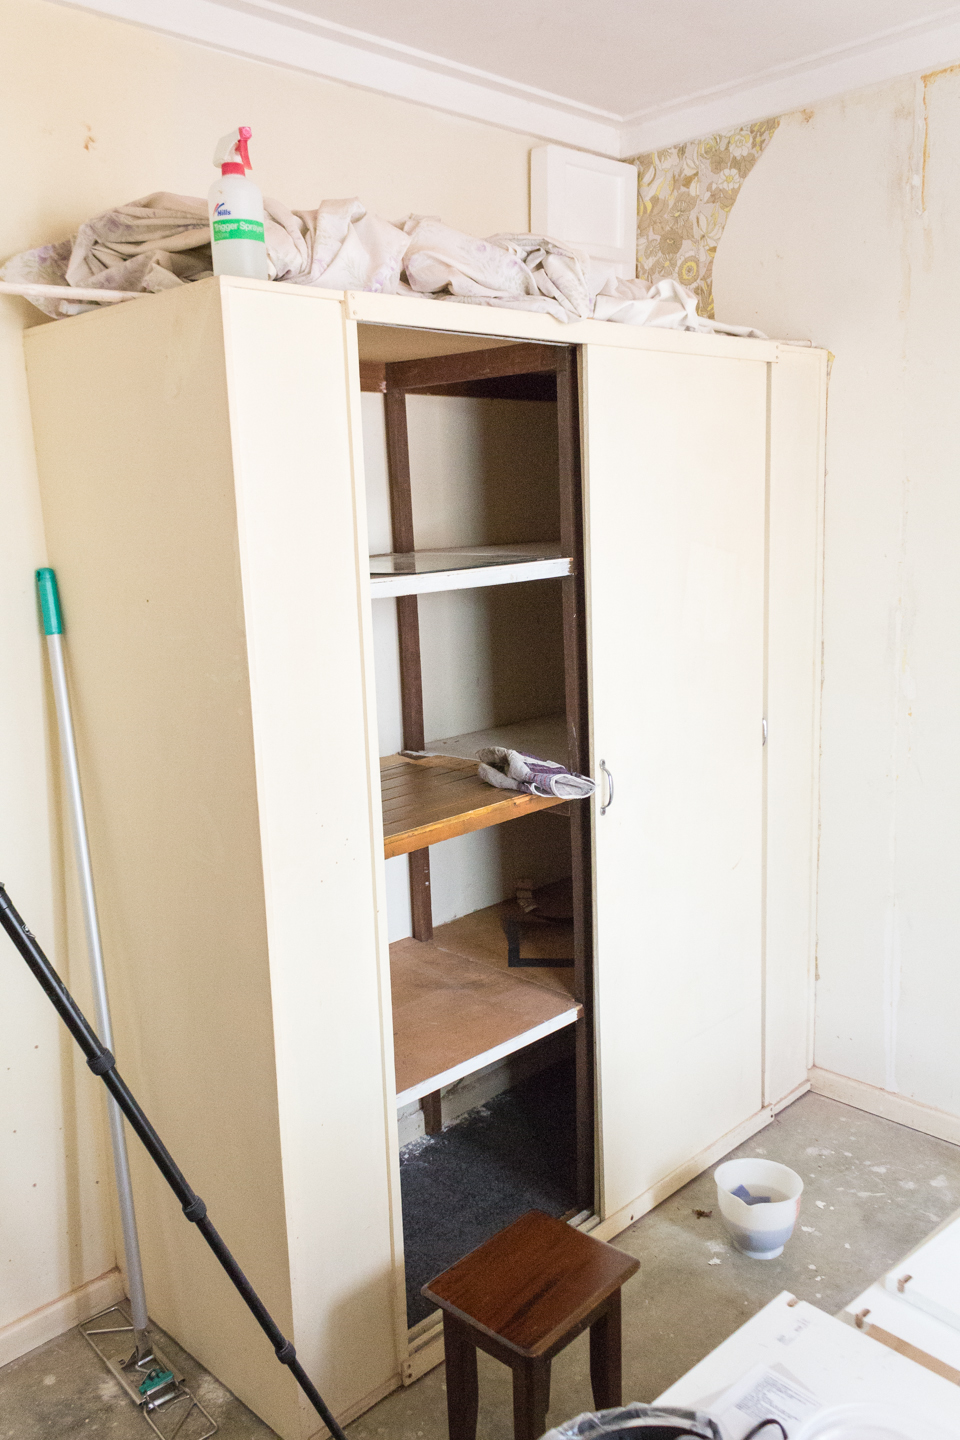 The very unusable wardrobe which also had mold growing on the bottom!